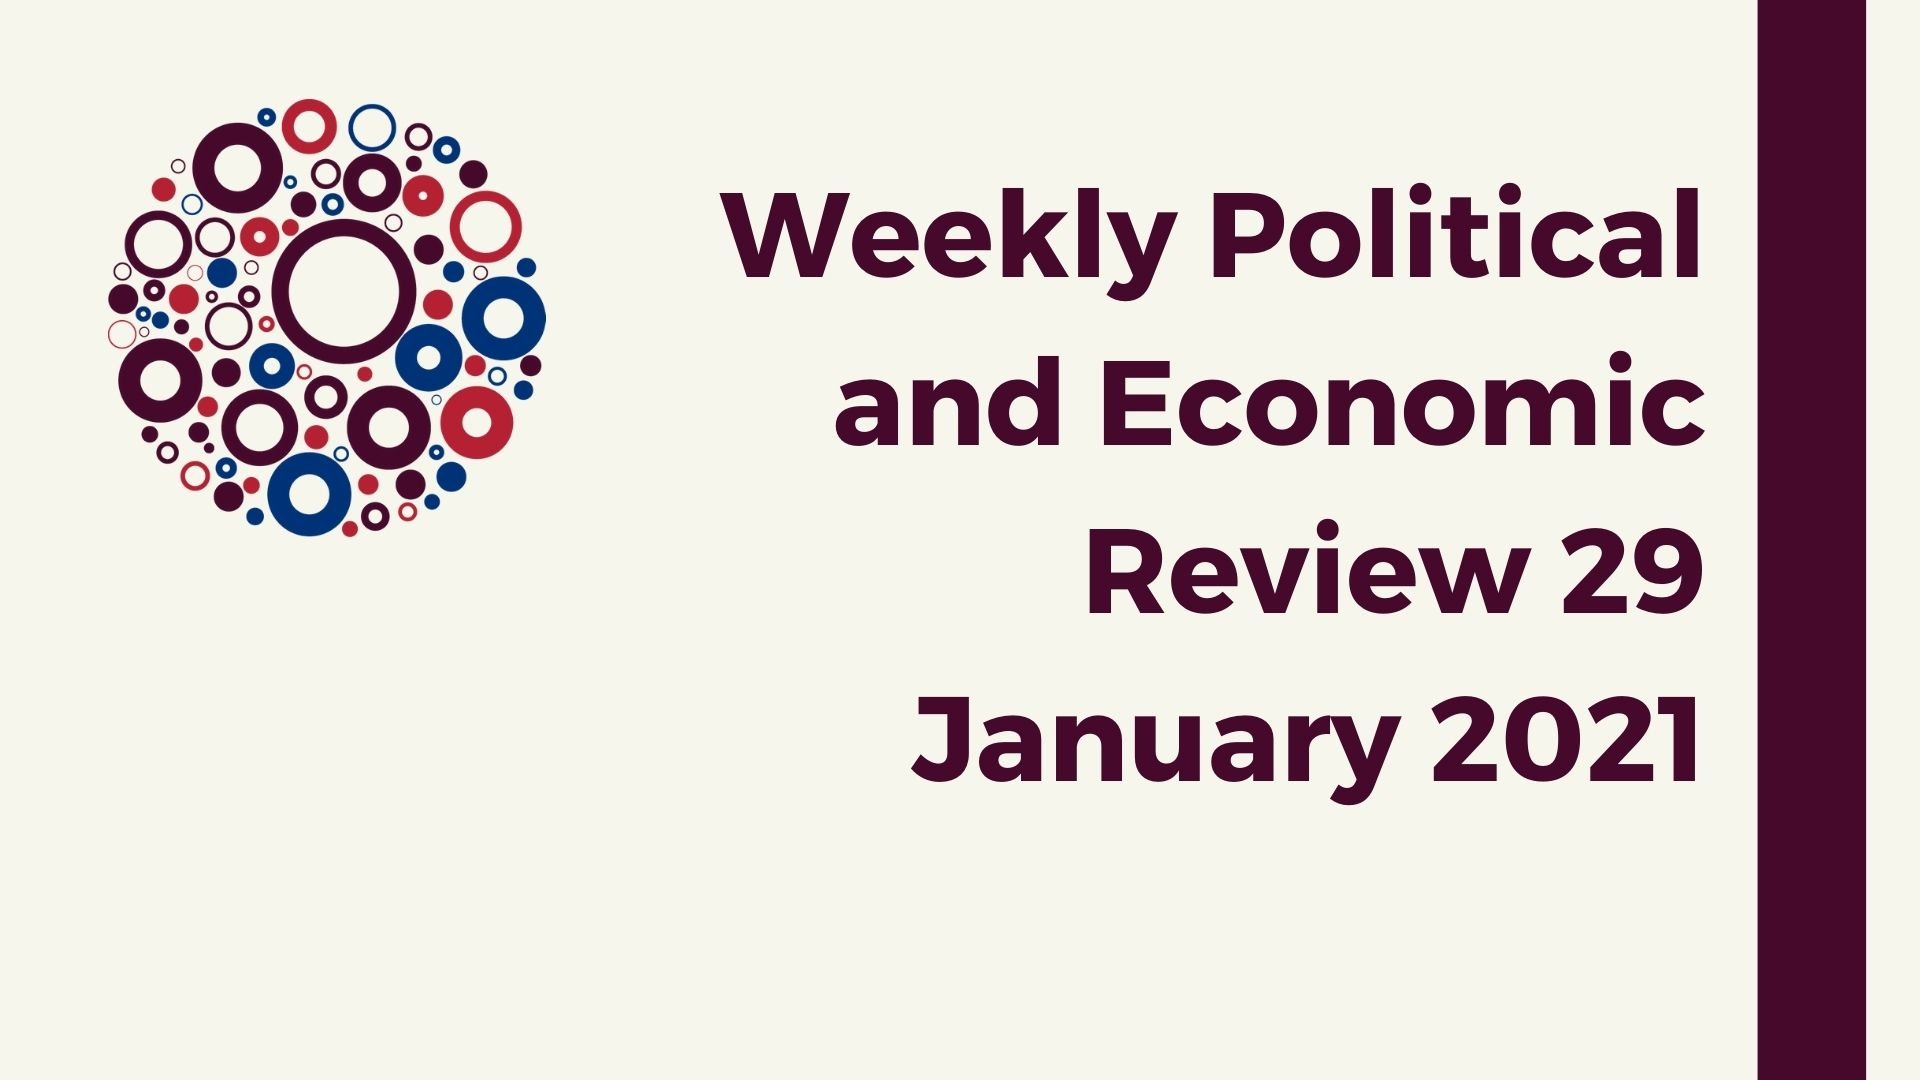 Weekly Political and Economic 29 January 2021